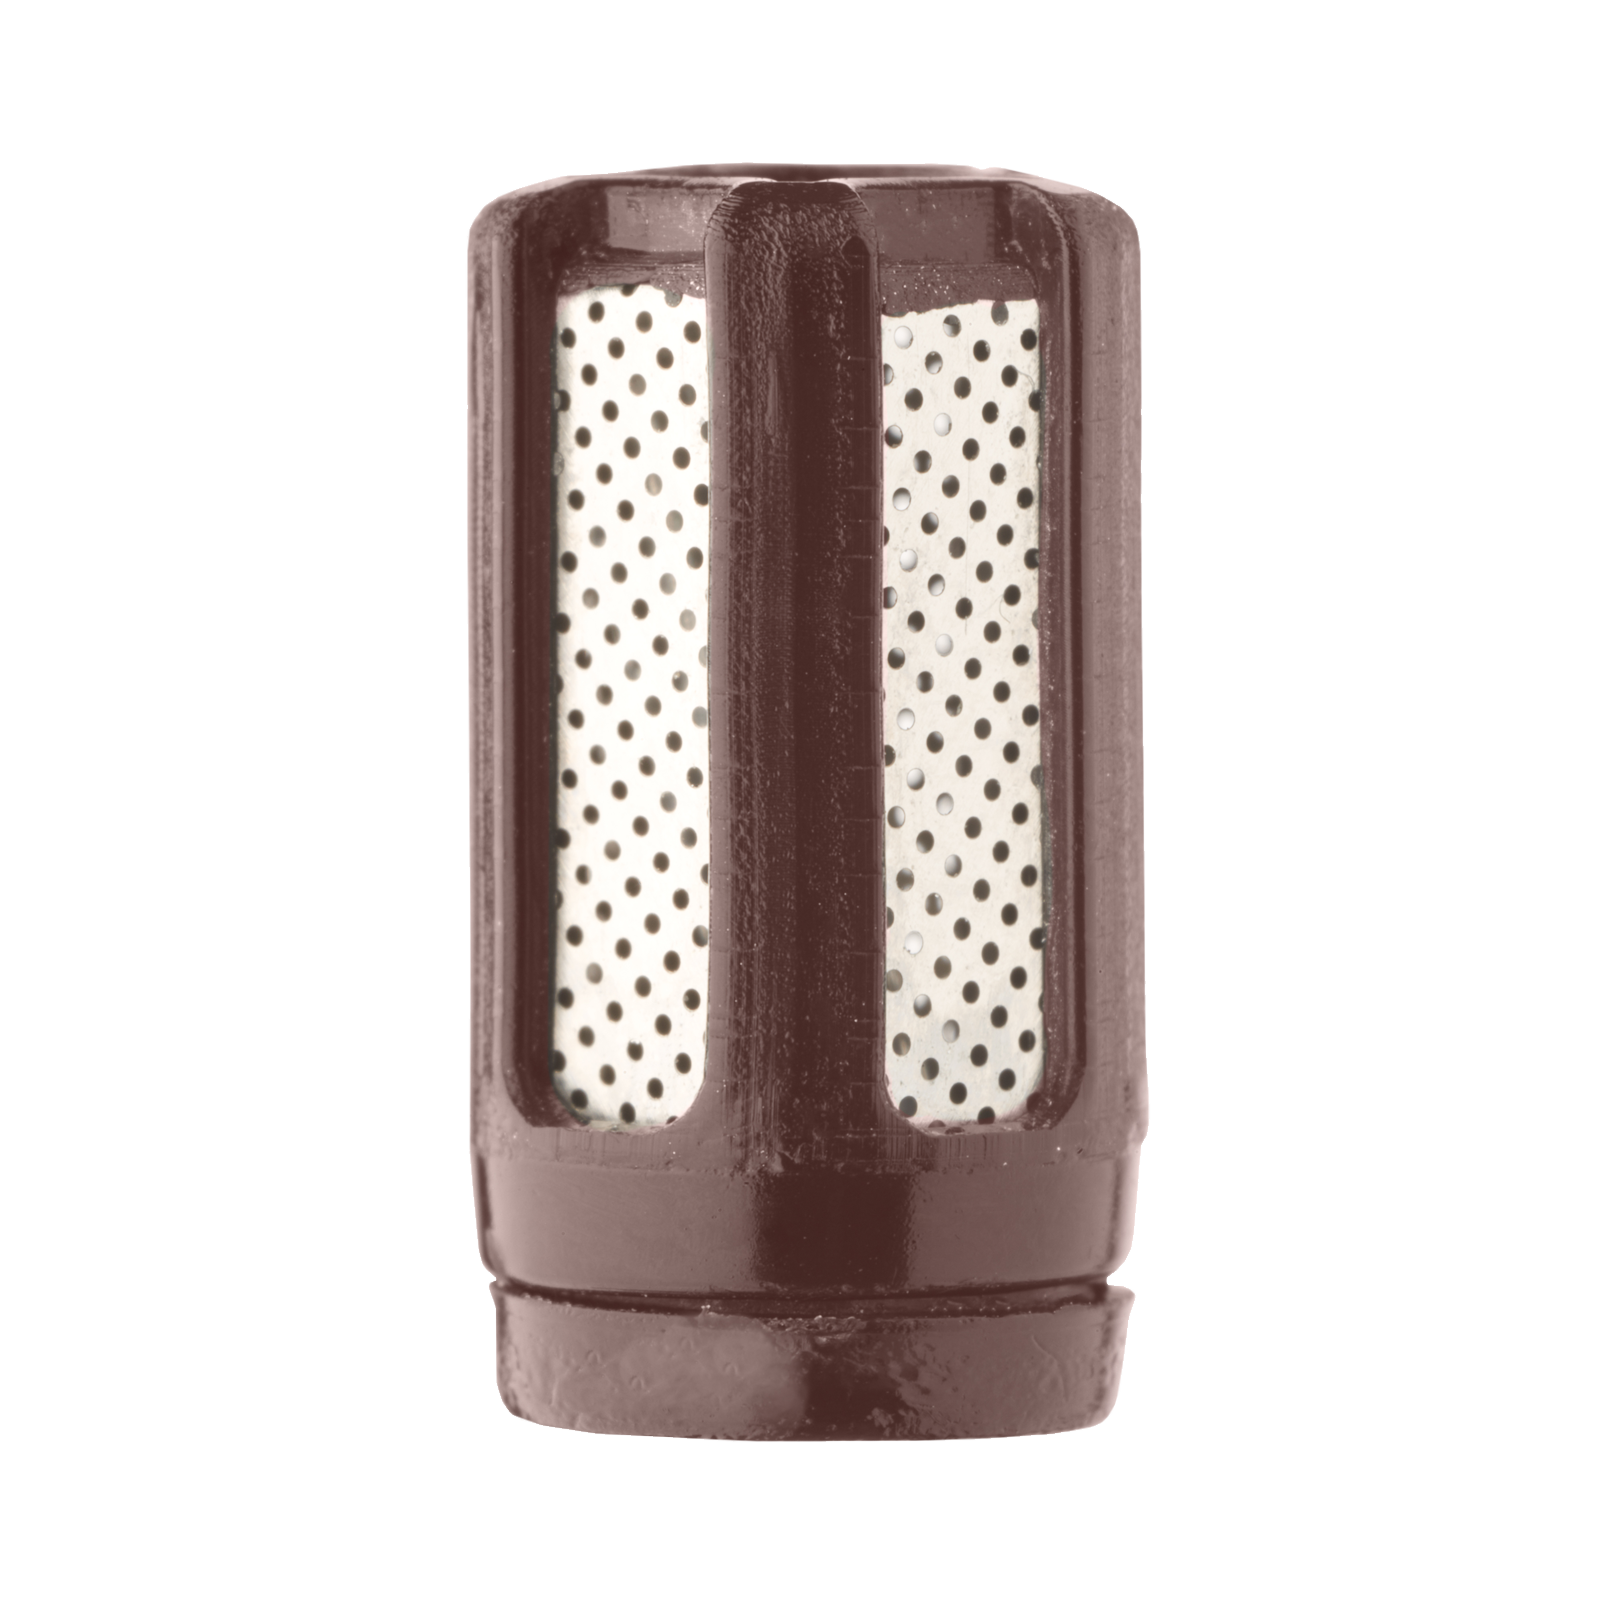 WM81 (5 Pack) - Cocoa - Wiremesh caps for MicroLite microphones - Hero